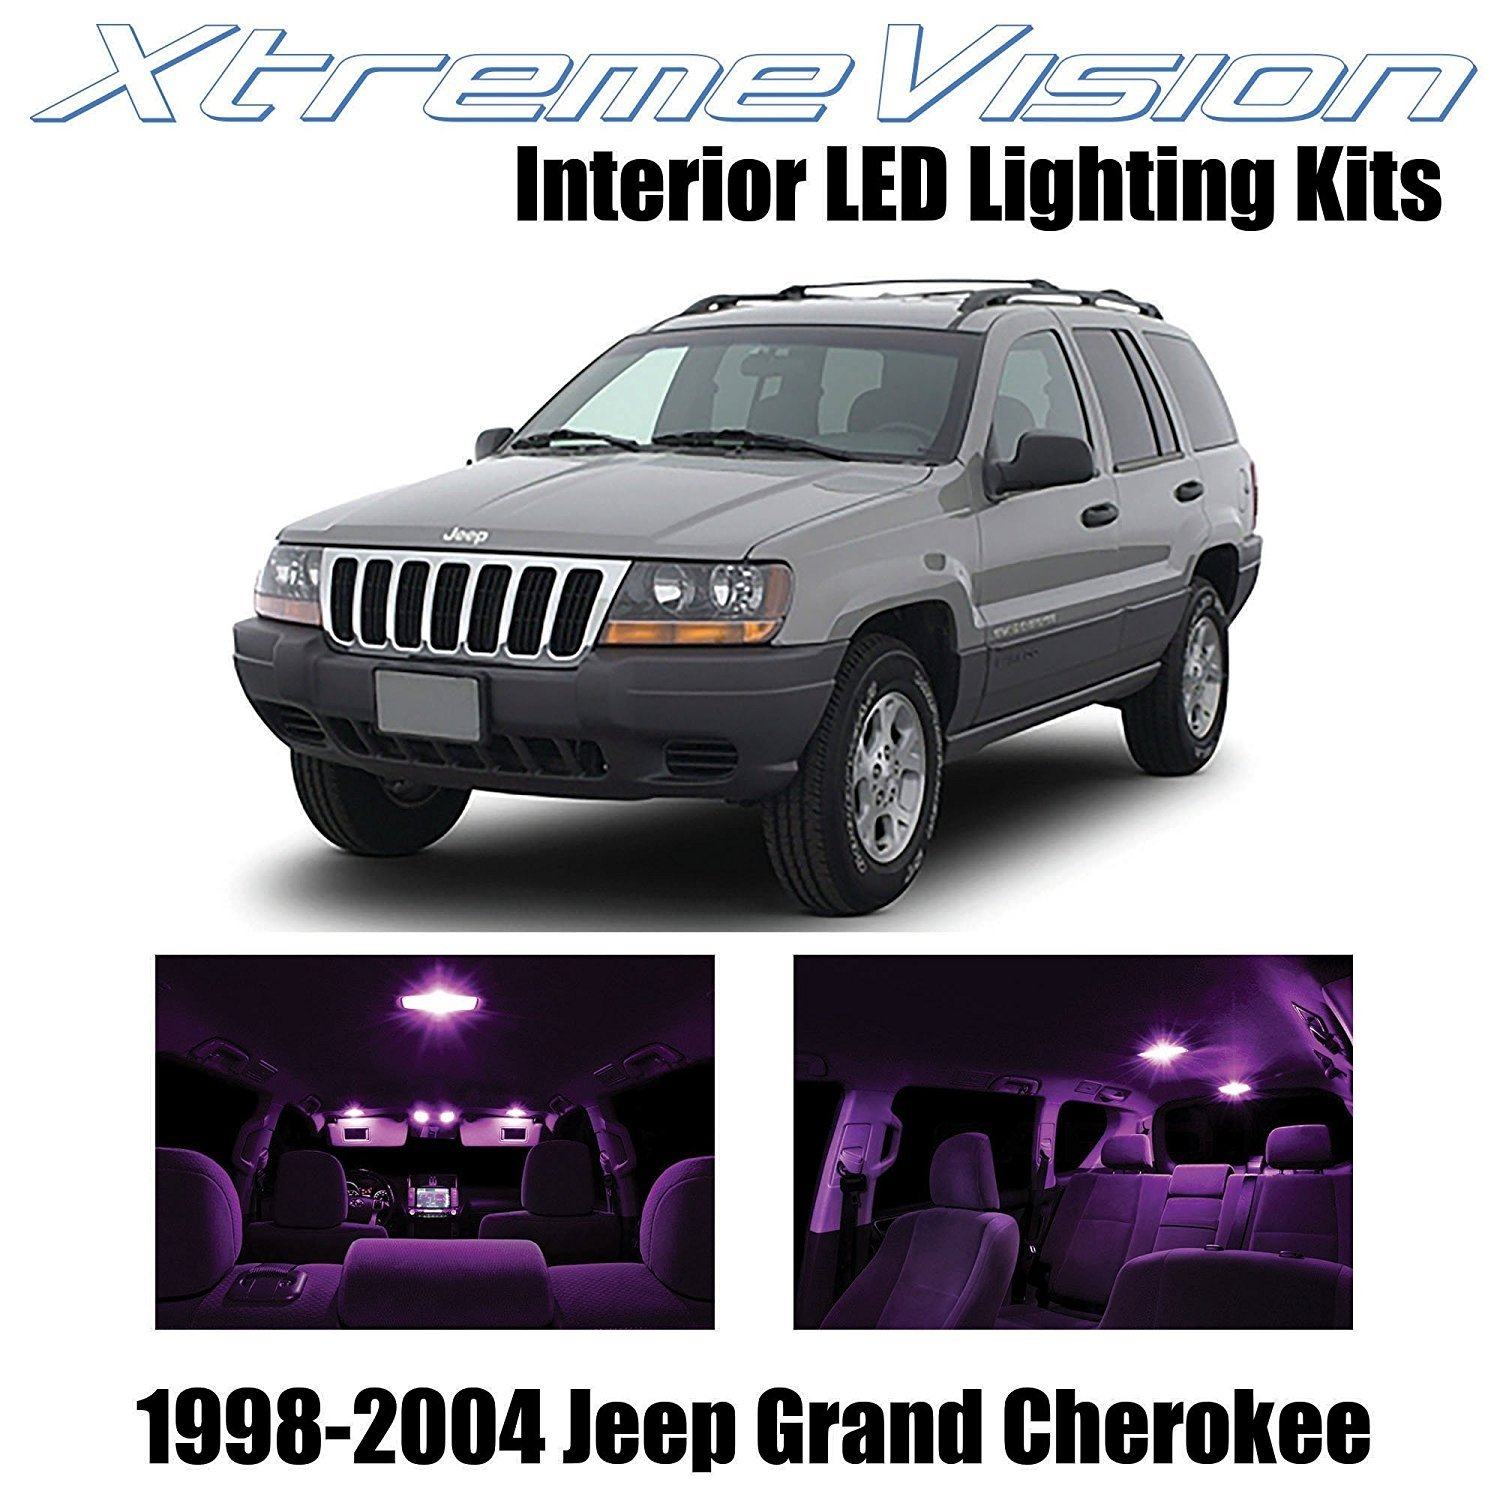 Xtremevision Led For Jeep Grand Cherokee 1998 2004 12 Pieces Pink Premium Interior Led Kit Package Installation Tool Walmart Com Walmart Com